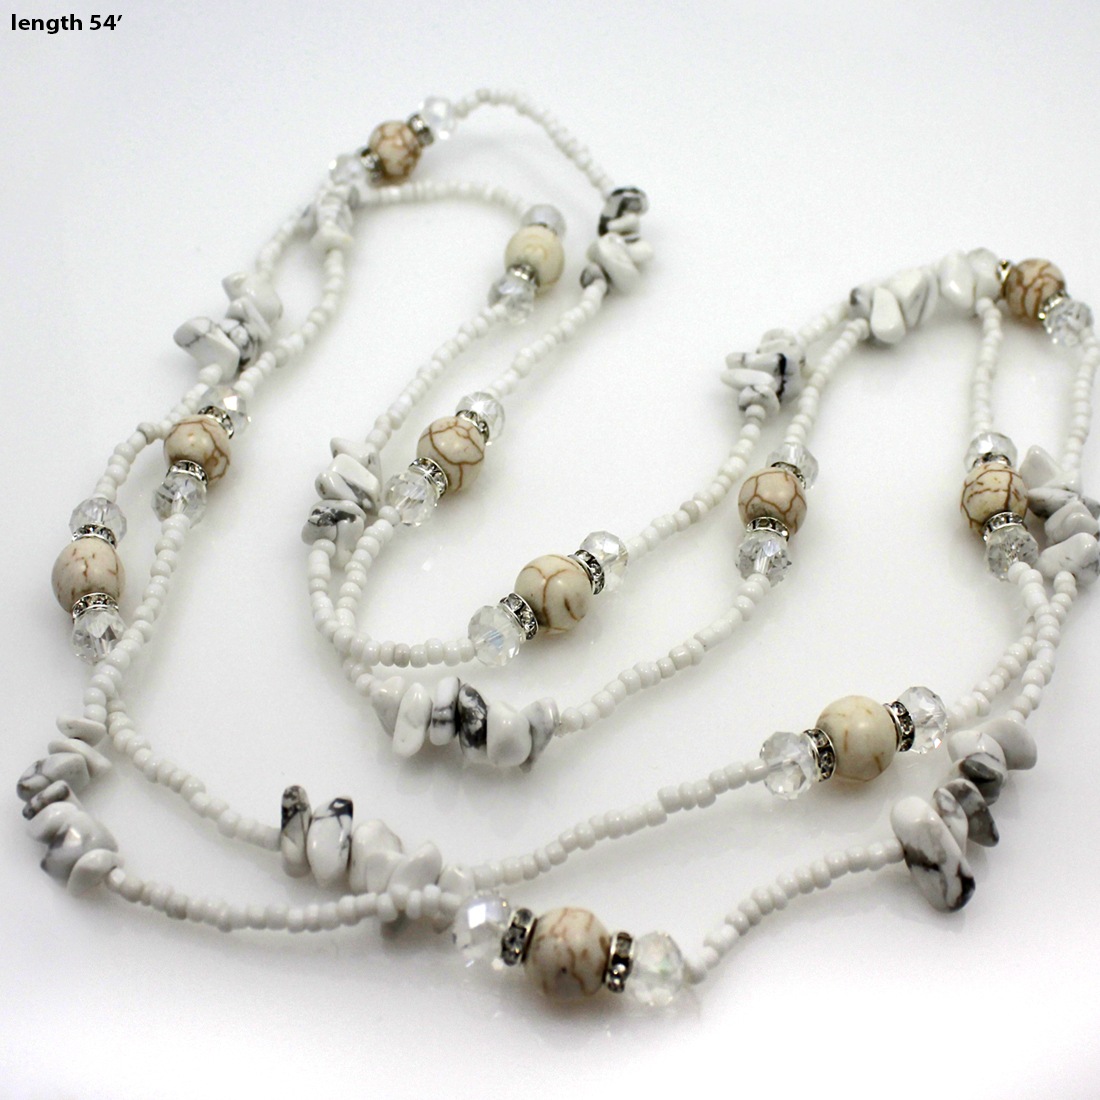 NKL04-WHITE - NKL04-WHITE WHOLESALE GENUINE CRYSTAL AND GLASS NECKLACE SET